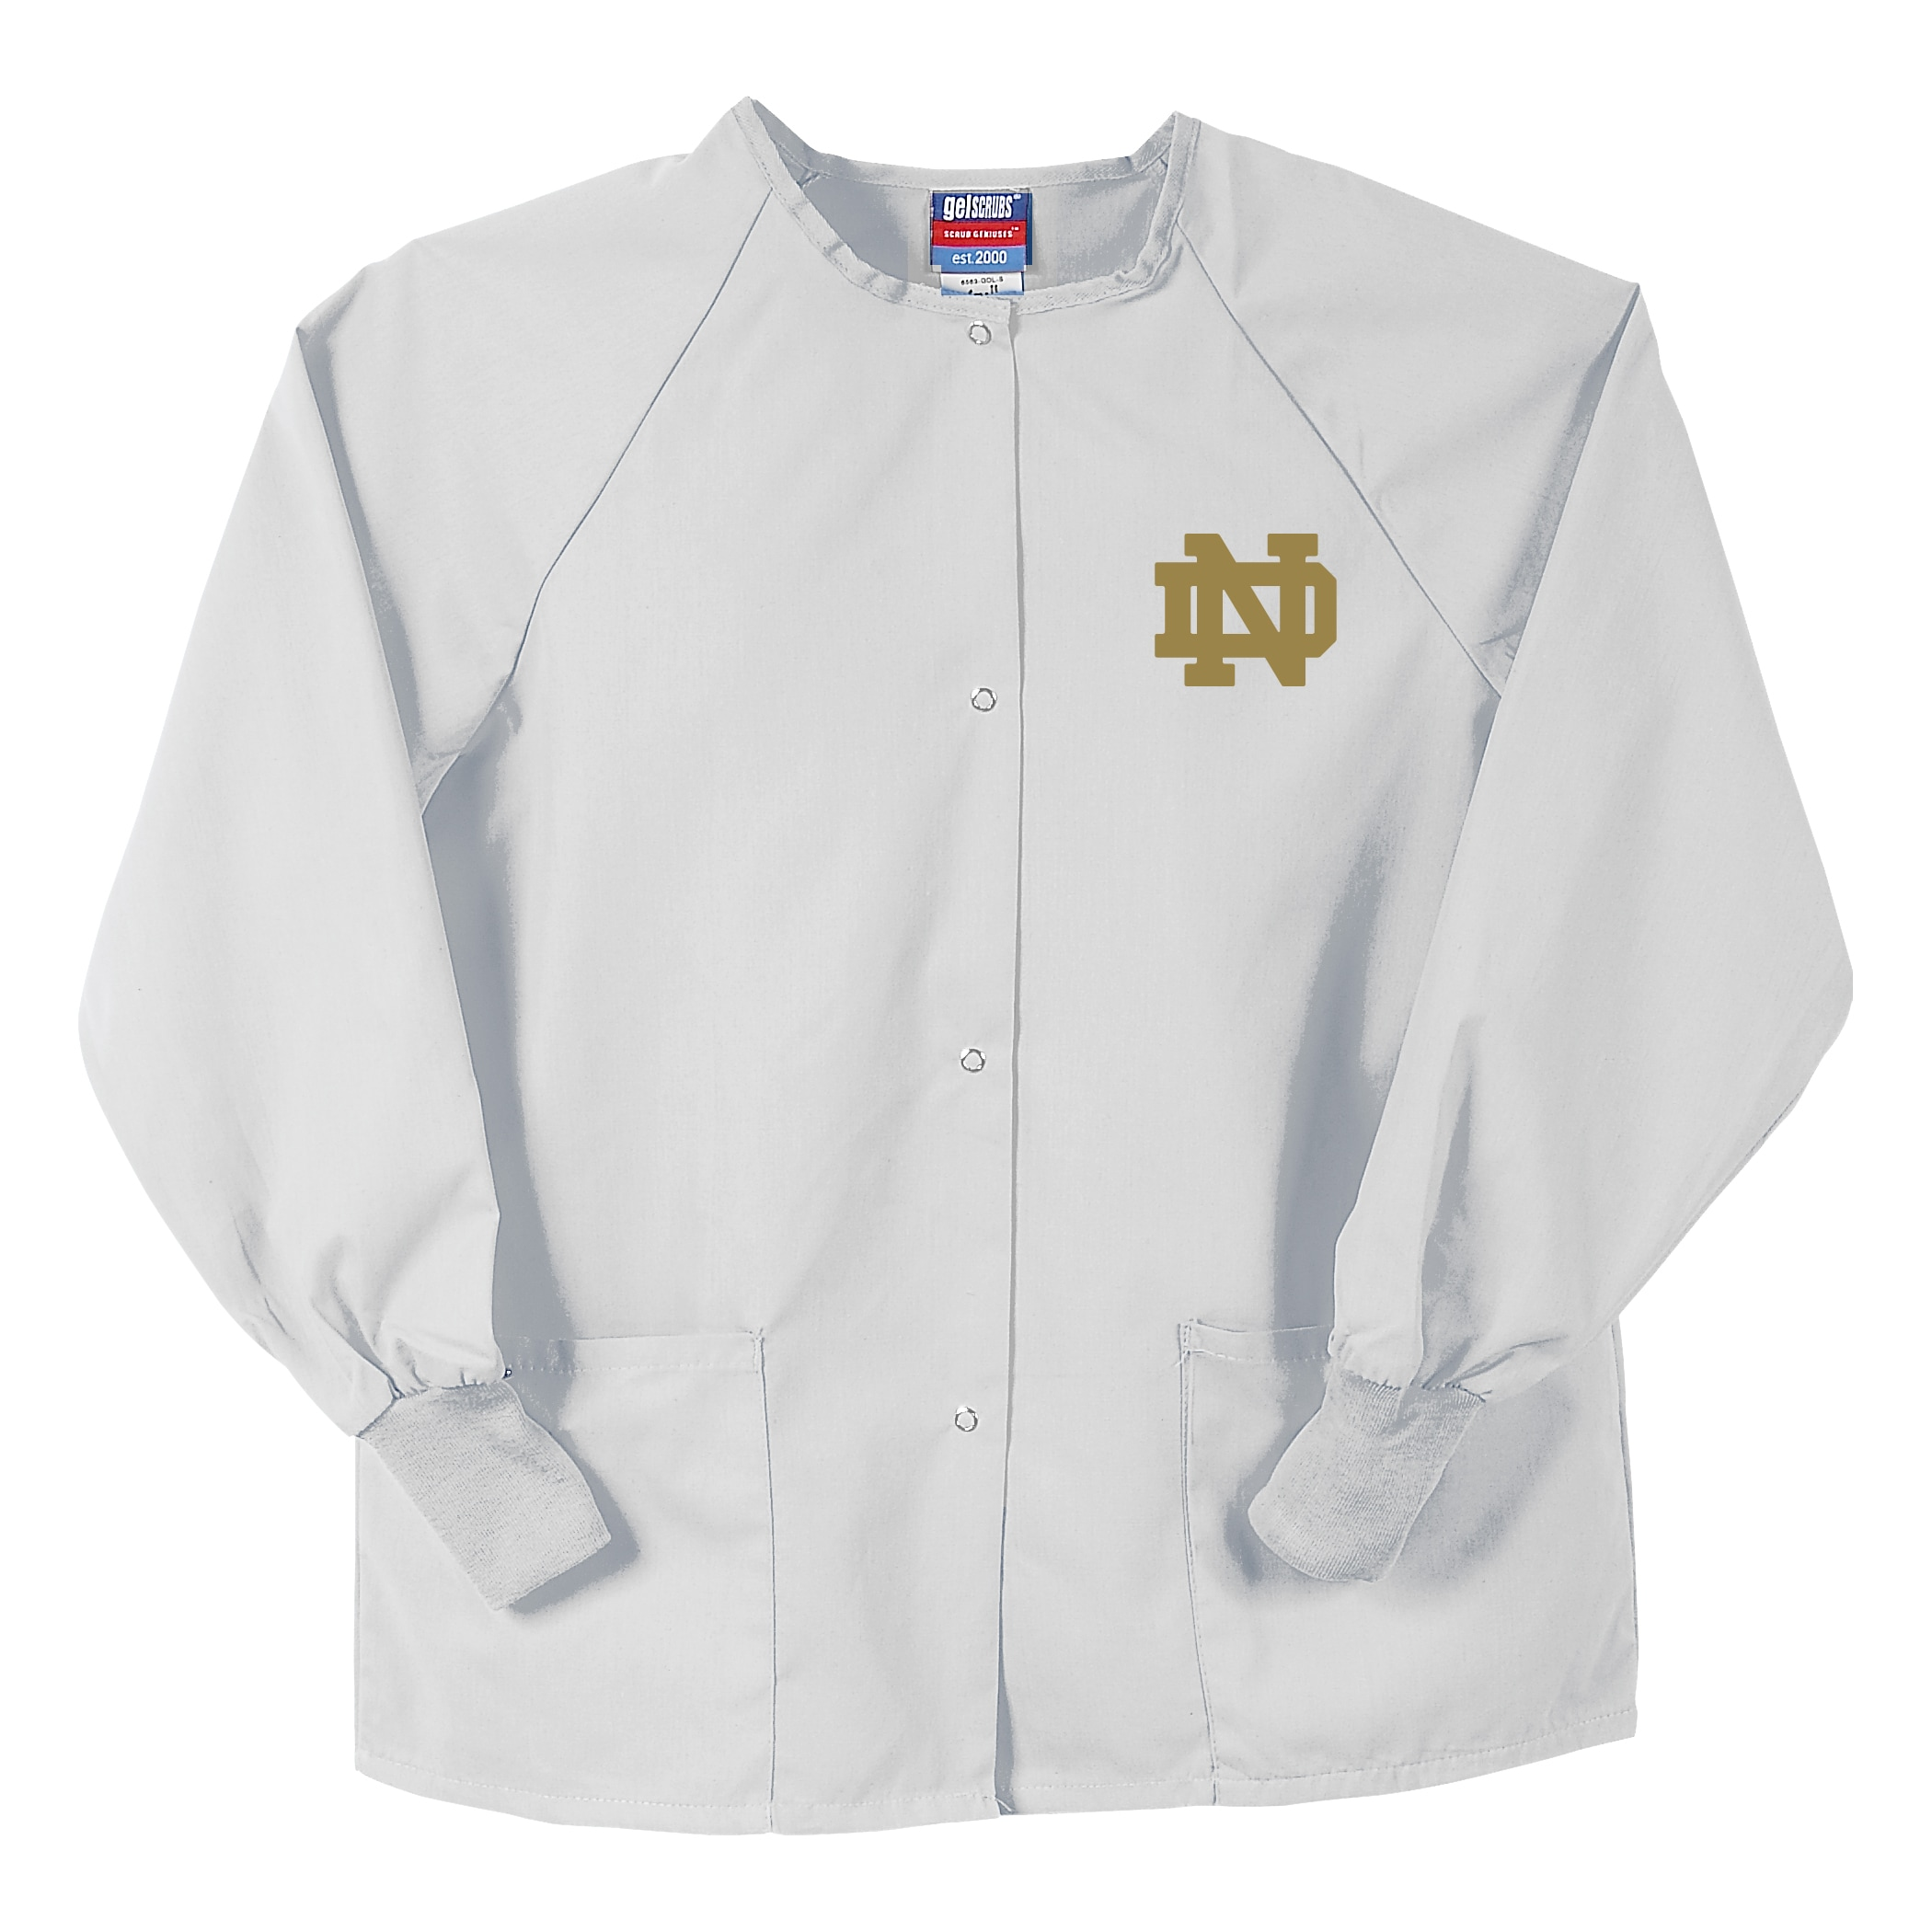 Gelscrubs White Notre Dame Fighting Irish Nurse Jacket - Thumbnail 0